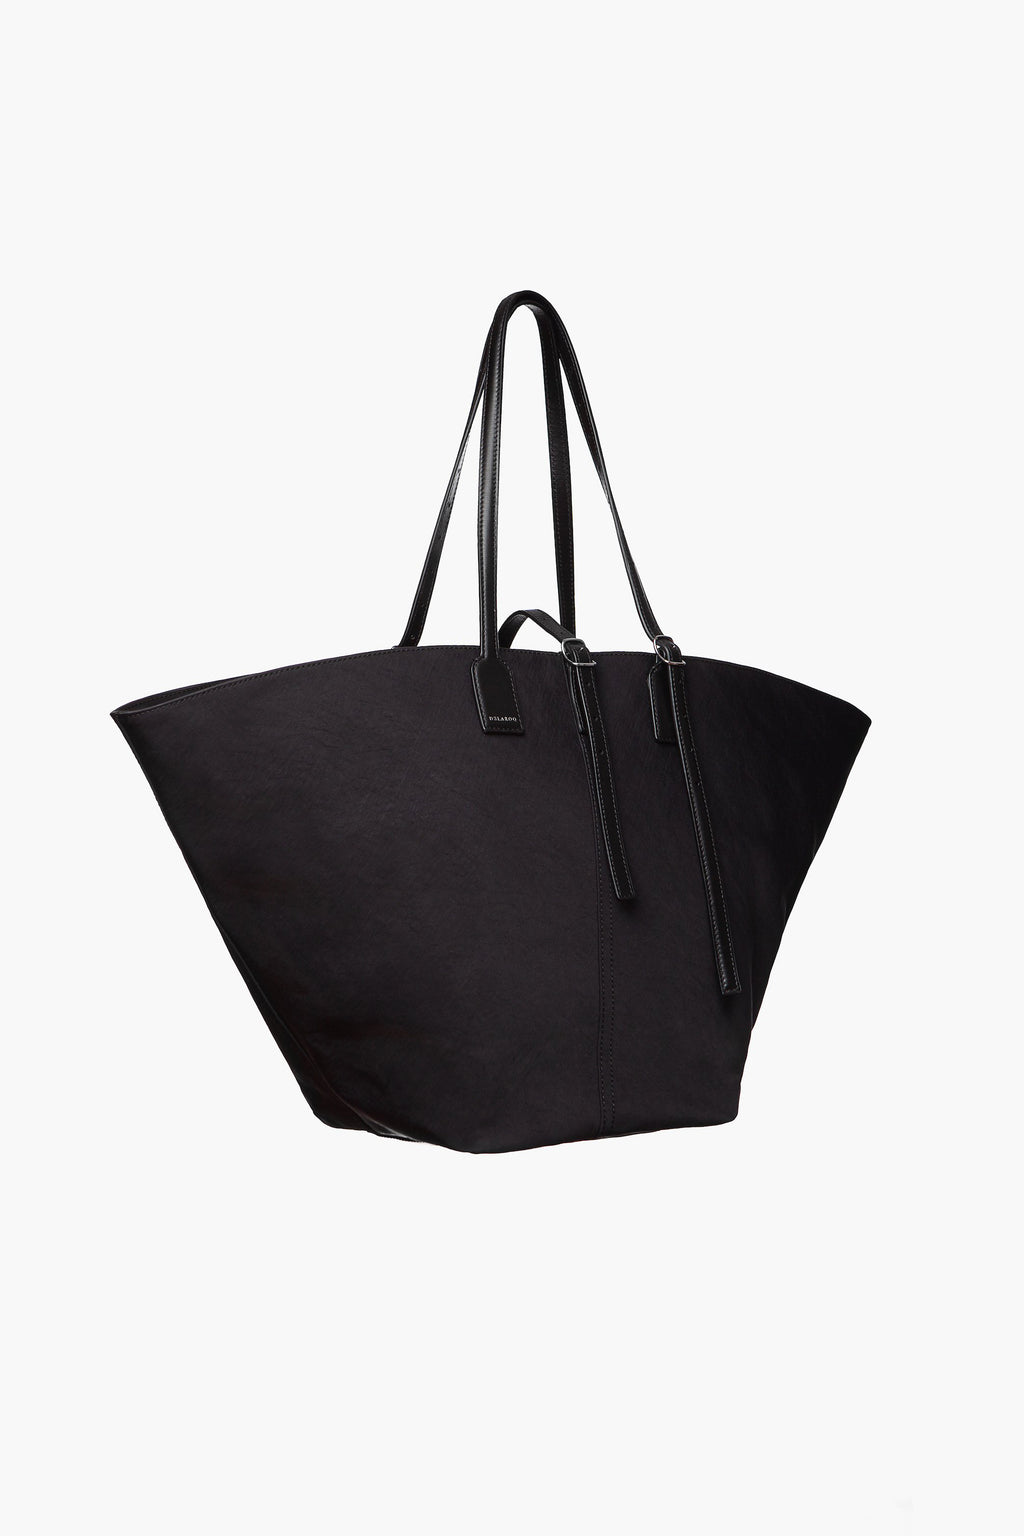 Concierge Tote: Le Grand in Recycled Nylon